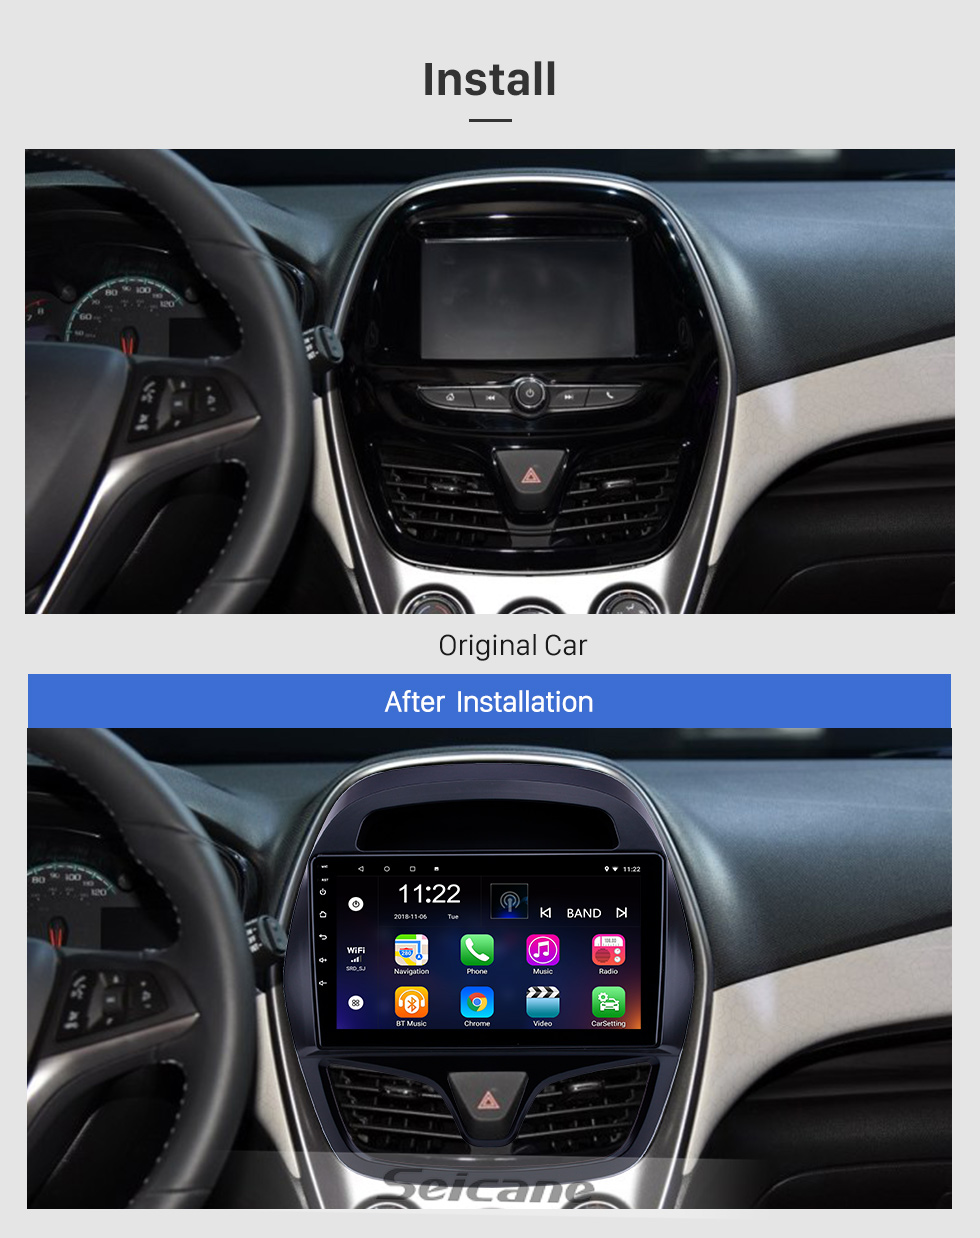 Seicane Android 8.1 9 inch Touchscreen GPS Navigation Radio for 2015-2018 chevy Chevrolet Spark Beat Daewoo Martiz with Bluetooth support Carplay SWC DAB+